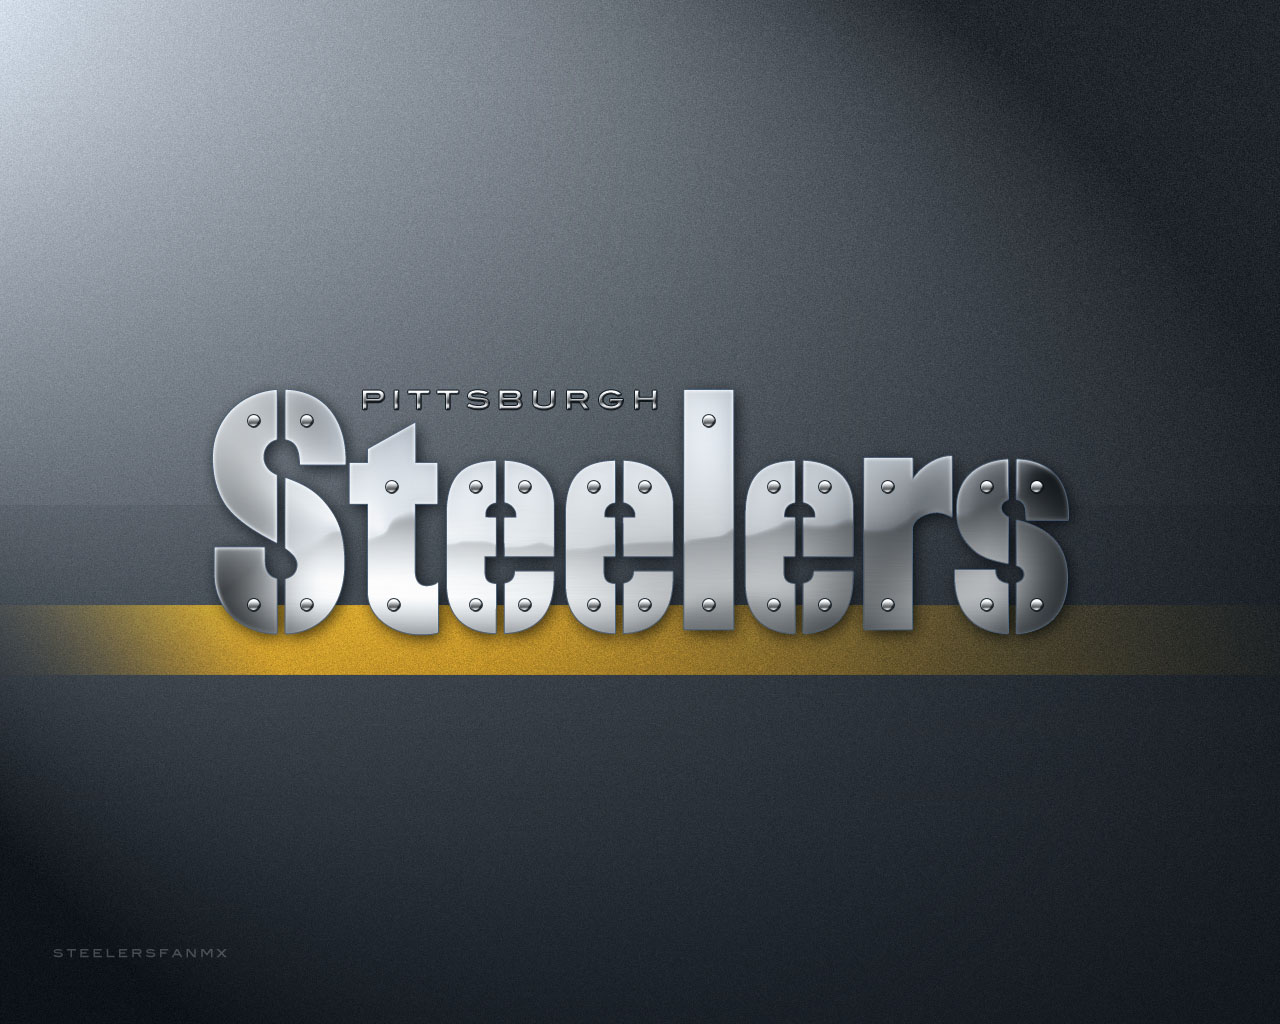 1280x1024 - Steelers Desktop 38